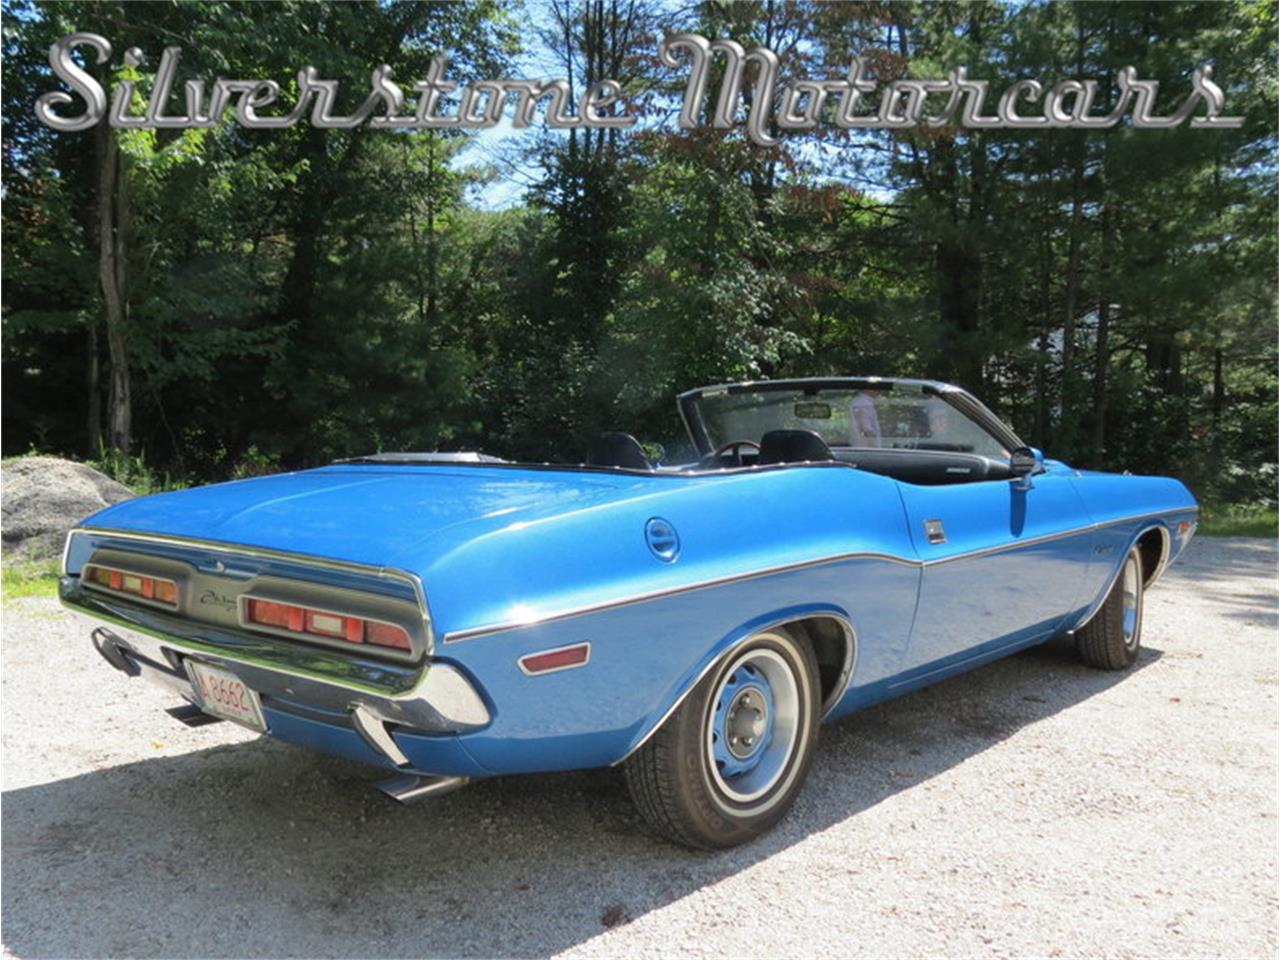 Large Picture of 1971 Challenger located in Massachusetts - $45,900.00 Offered by Silverstone Motorcars - J0QS